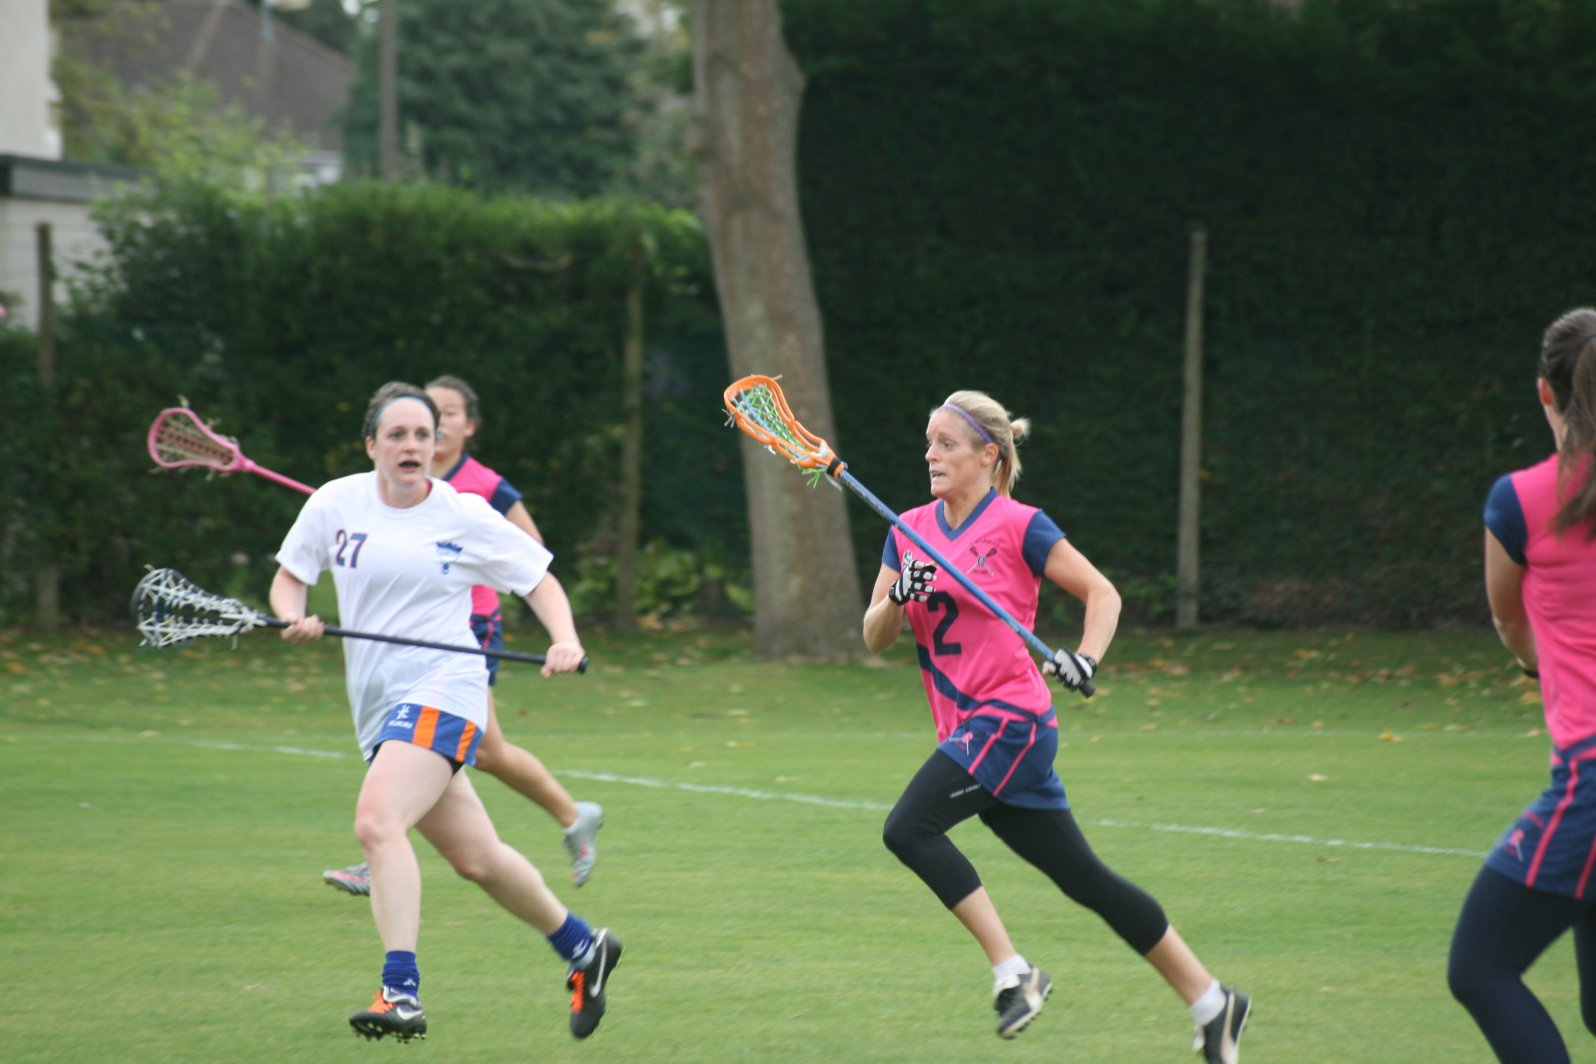 SEWLA League - Fixtures, results and tables from the South East Women's Lacrosse Association